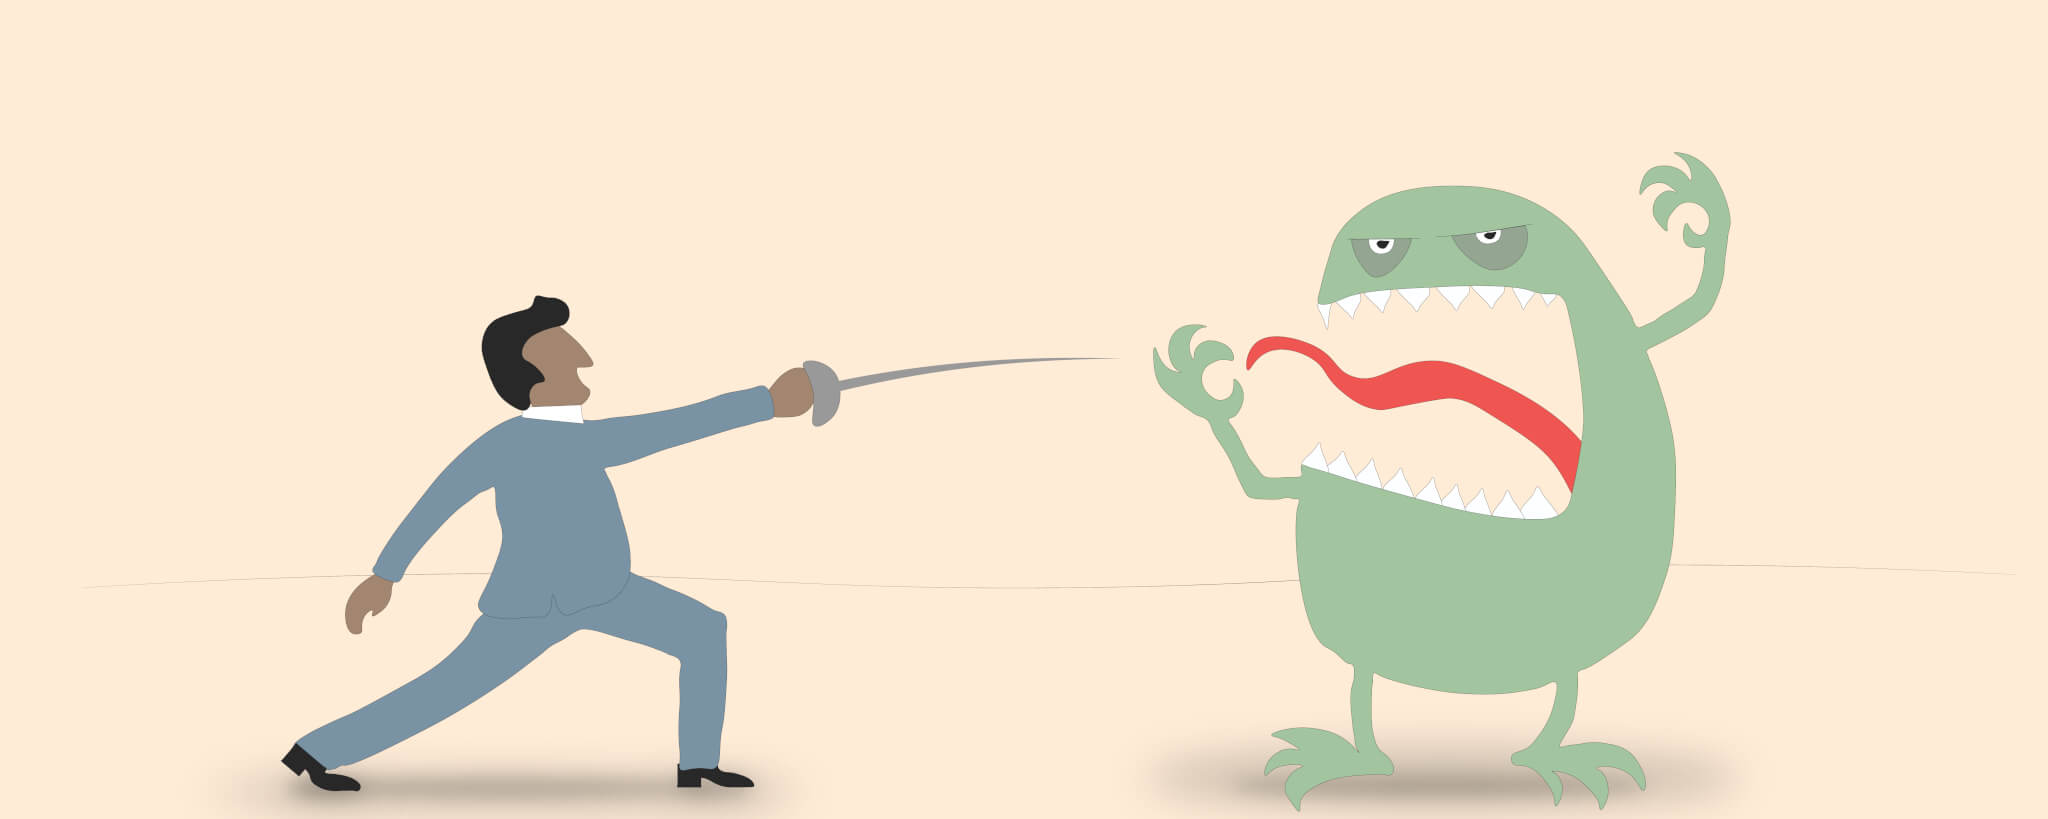 Get Out Of Debt: 4 Mistakes To Avoid When Fighting The Debt Monster